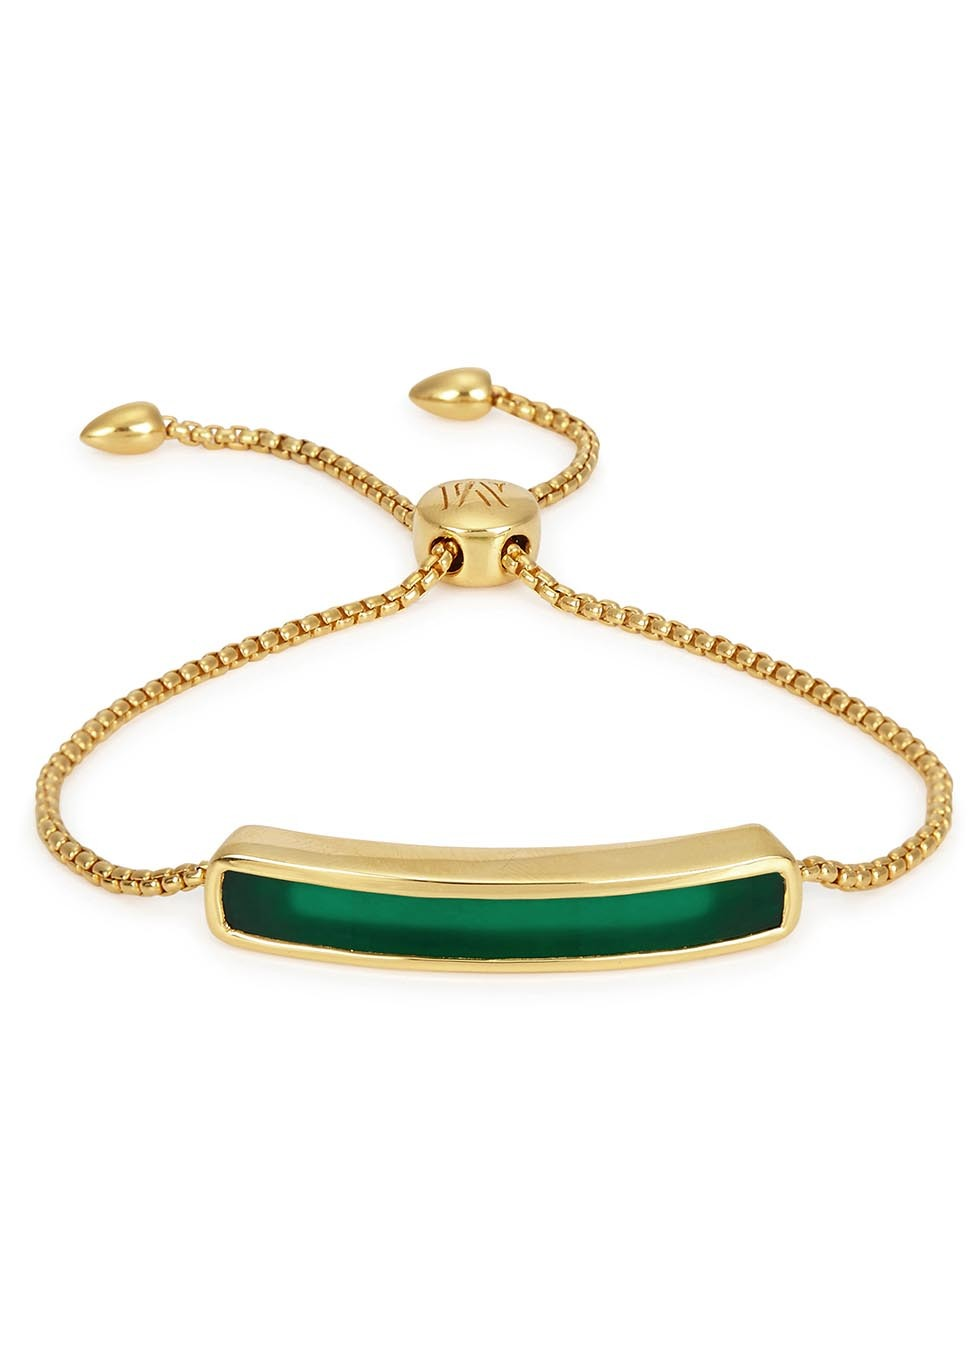 Baja 18kt Gold Plated Bracelet - predominant colour: dark green; secondary colour: gold; occasions: evening, occasion; style: friendship/tie; size: standard; material: chain/metal; finish: metallic; embellishment: jewels/stone; season: s/s 2016; wardrobe: event